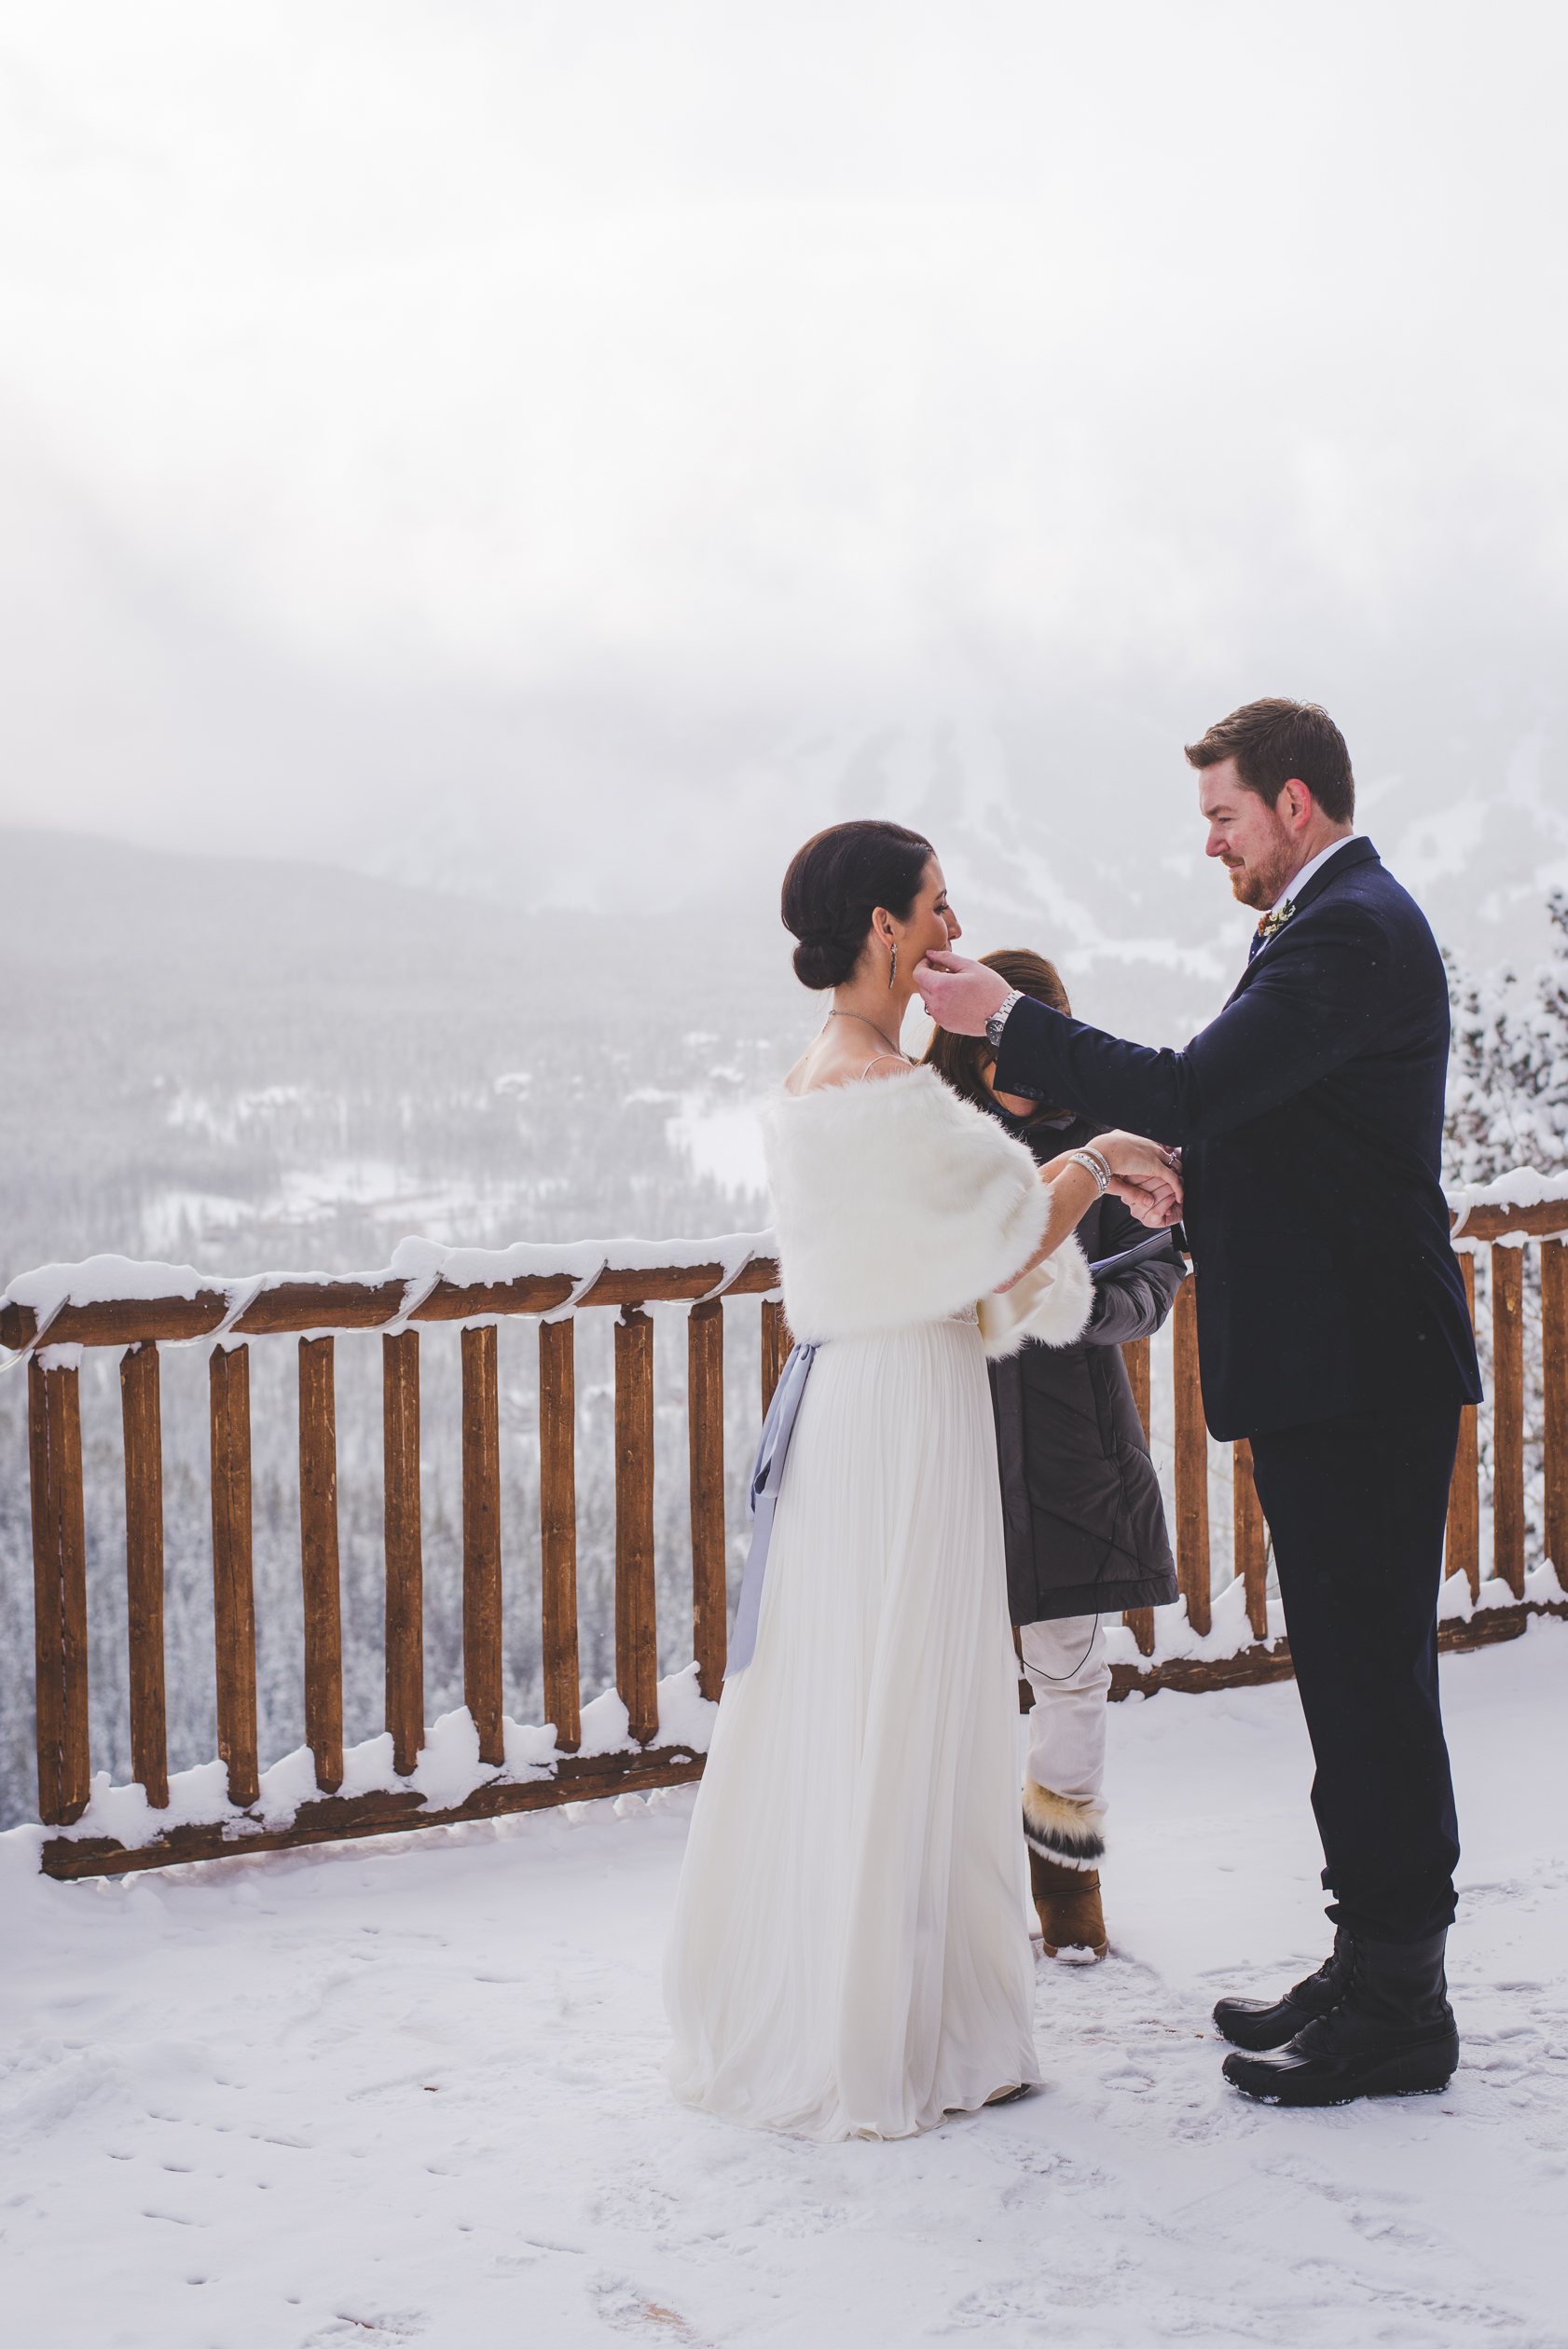 breckenridge, colorado winter elopement outdoors at the lodge at breckenridge| photo by keeping composure photography